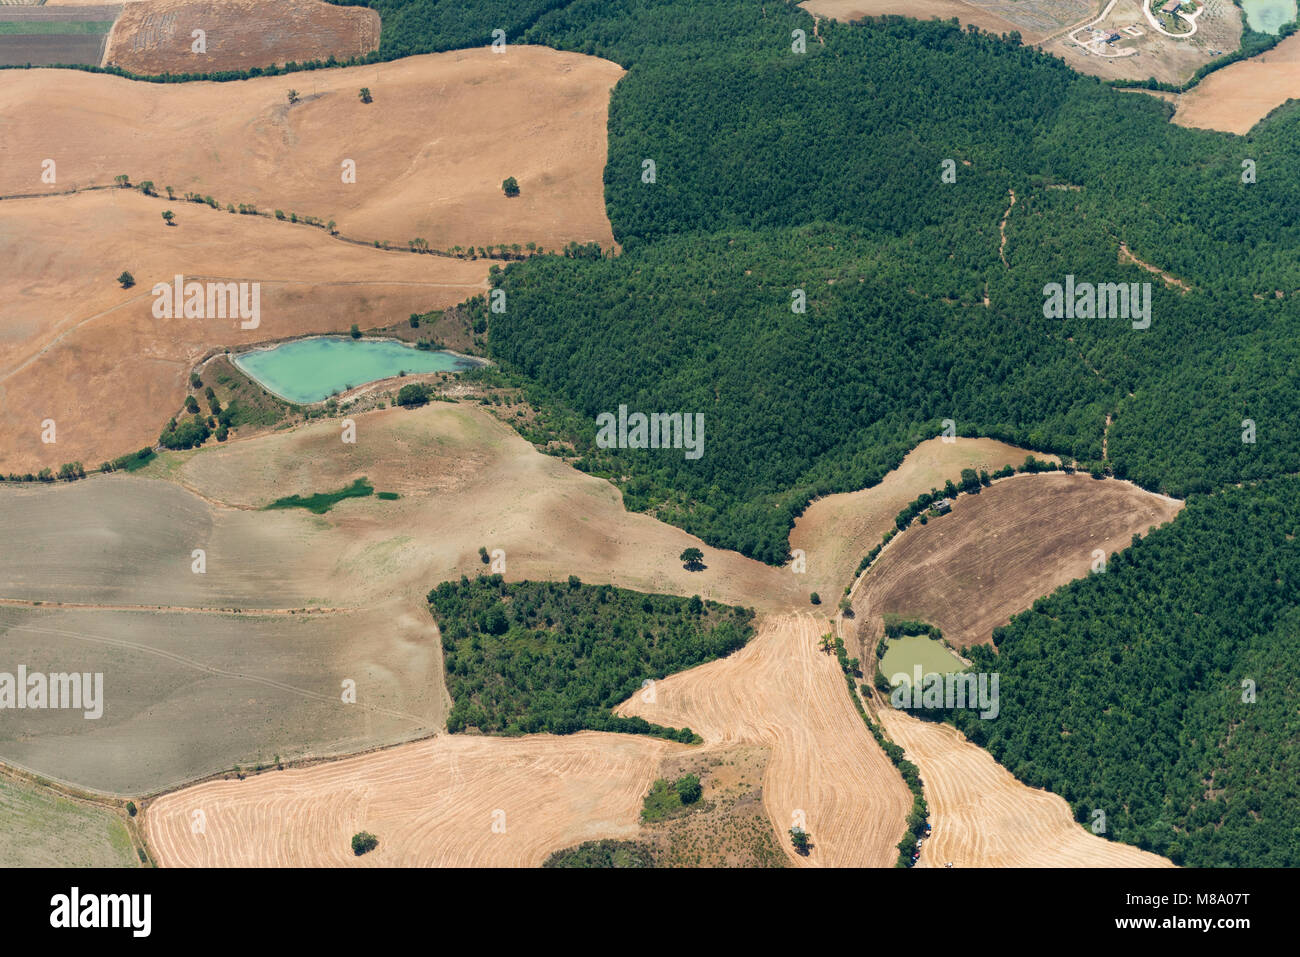 Aerial image of the countryside between Tuscania and Viterbo, typical for the Viterbo province Stock Photo